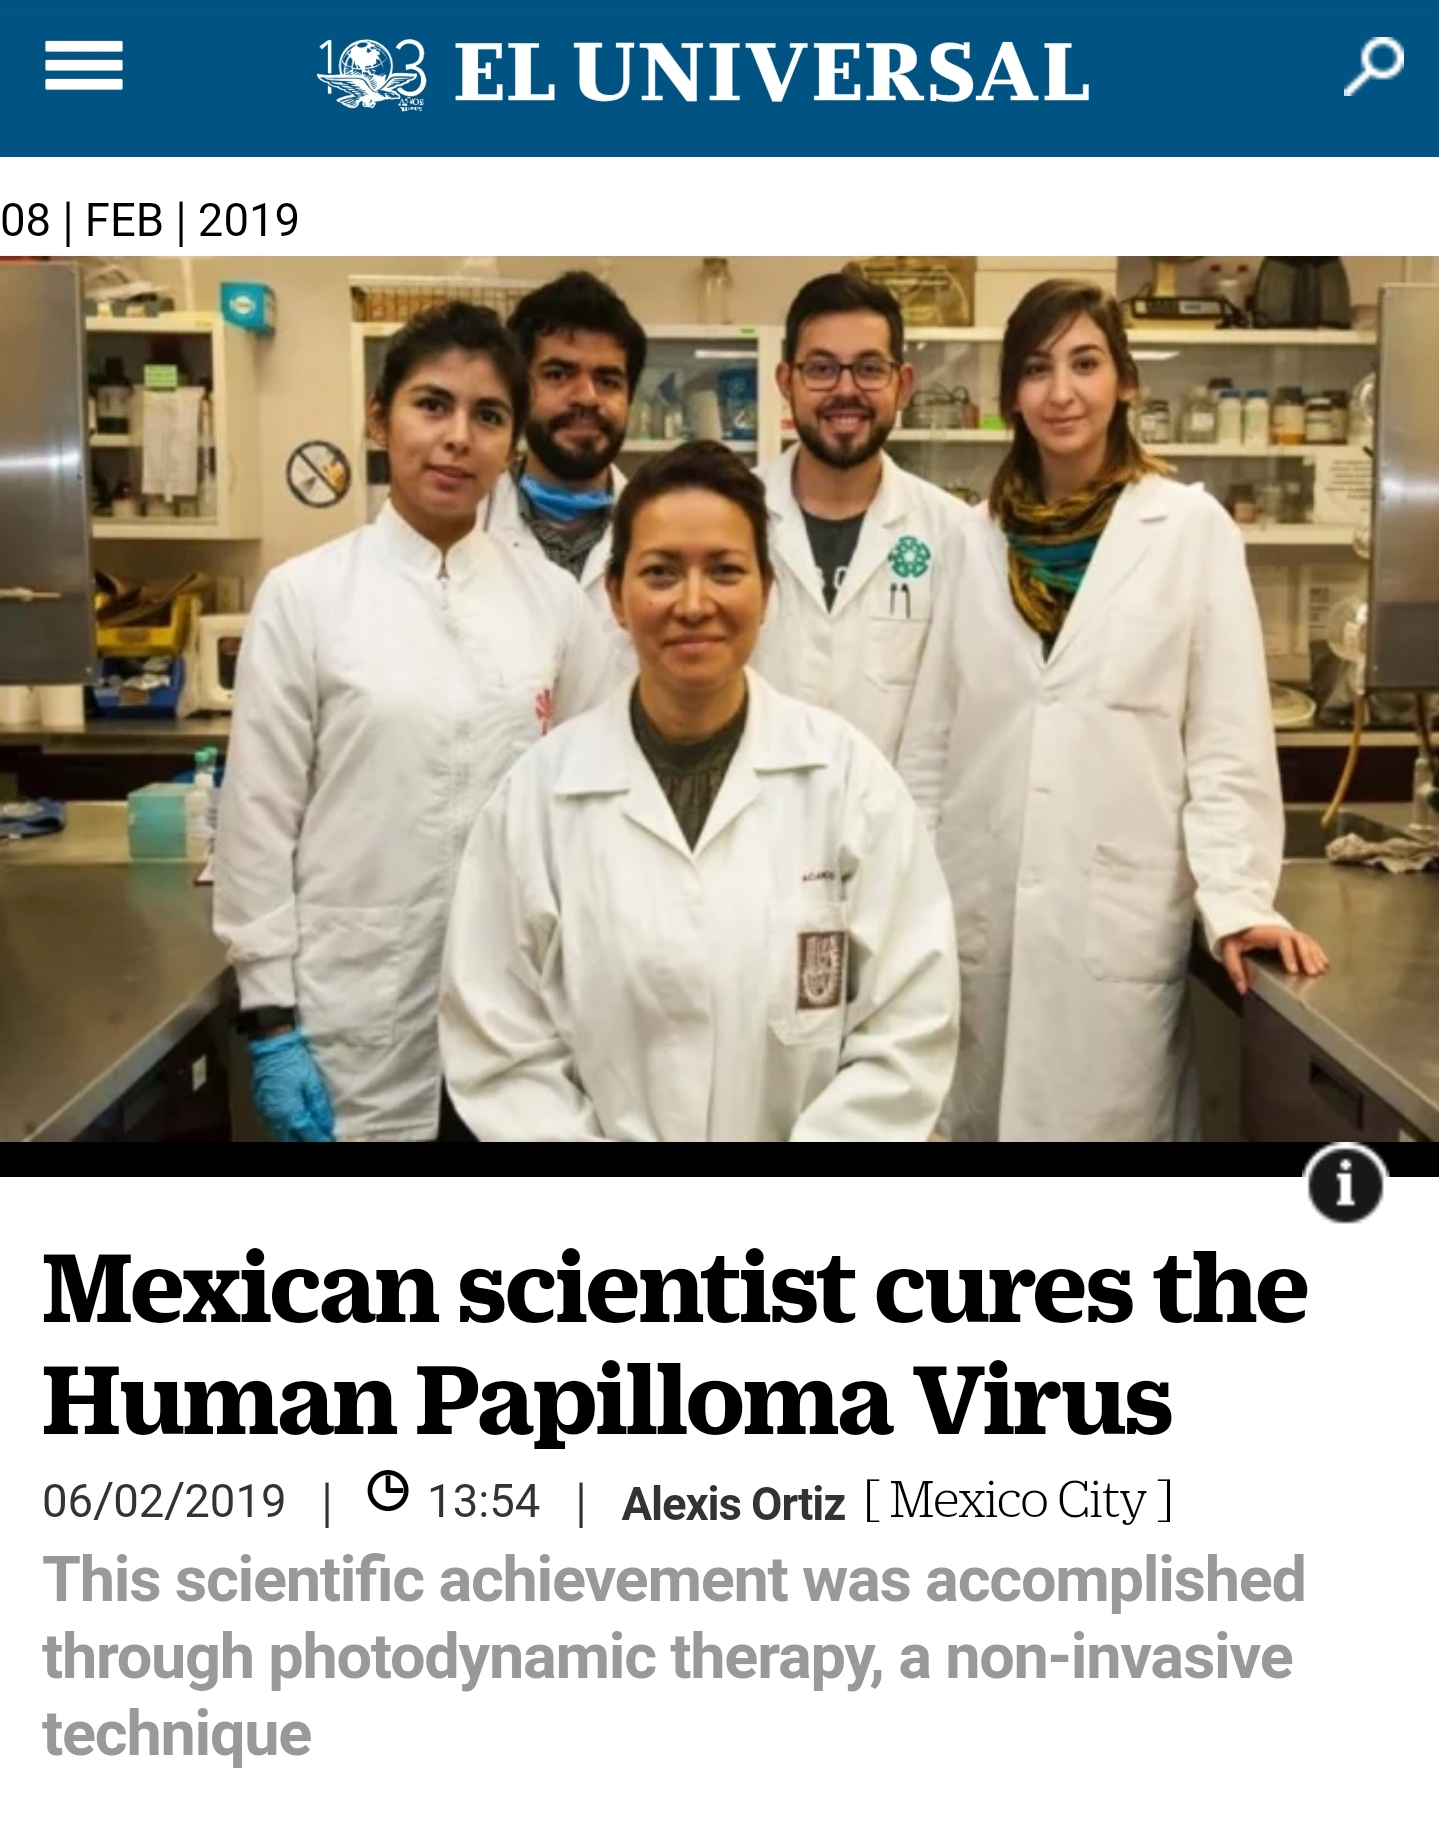 hpv cure by mexican)